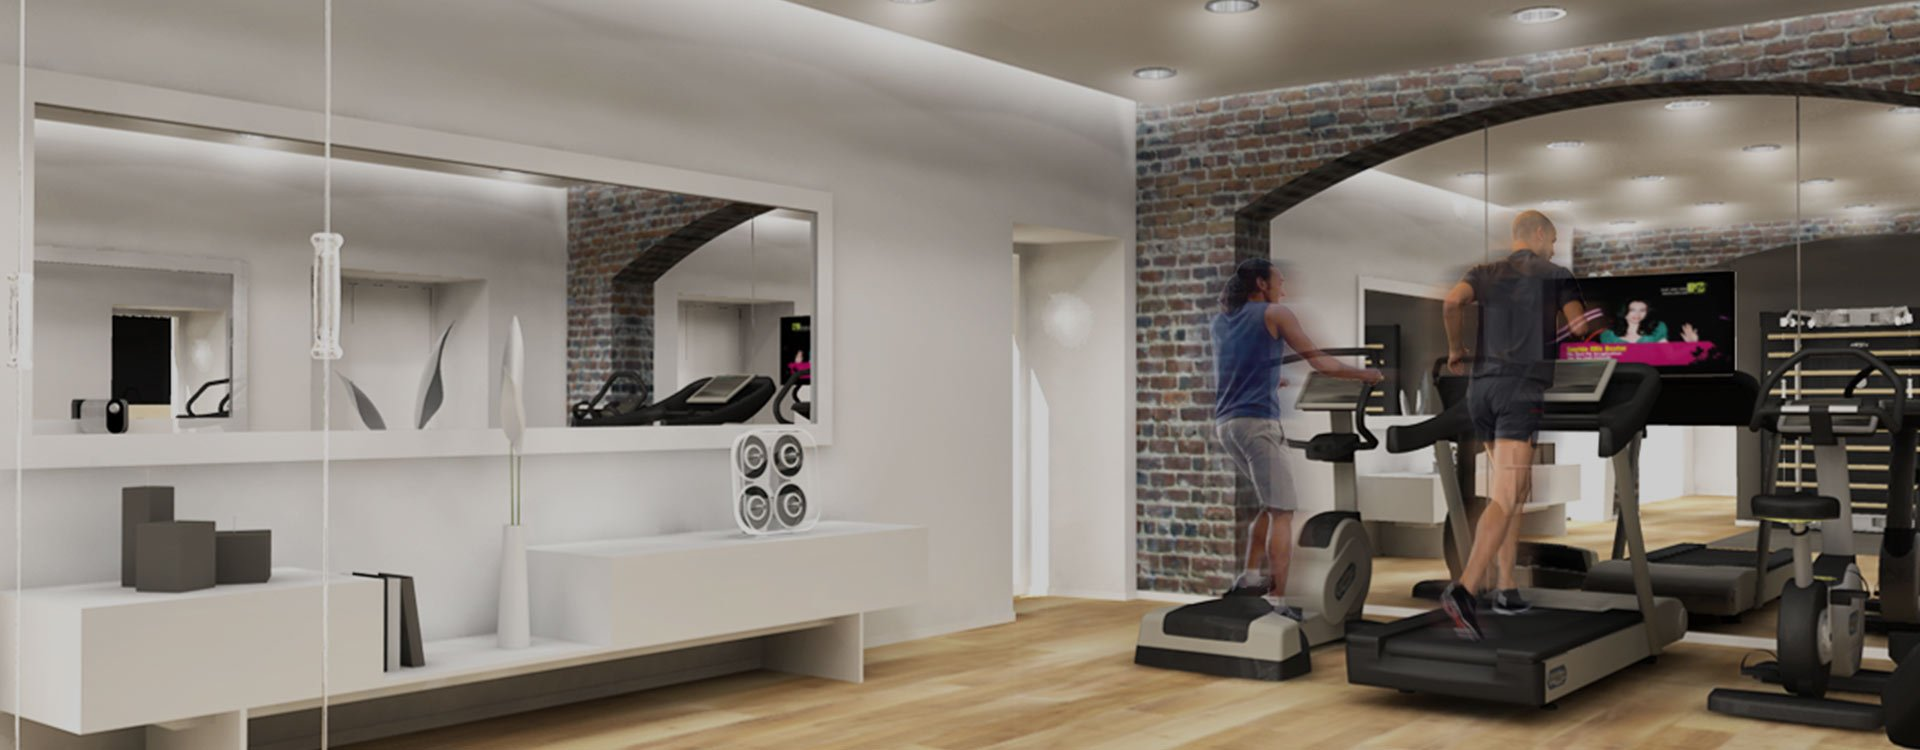 Functionality and design for your gym